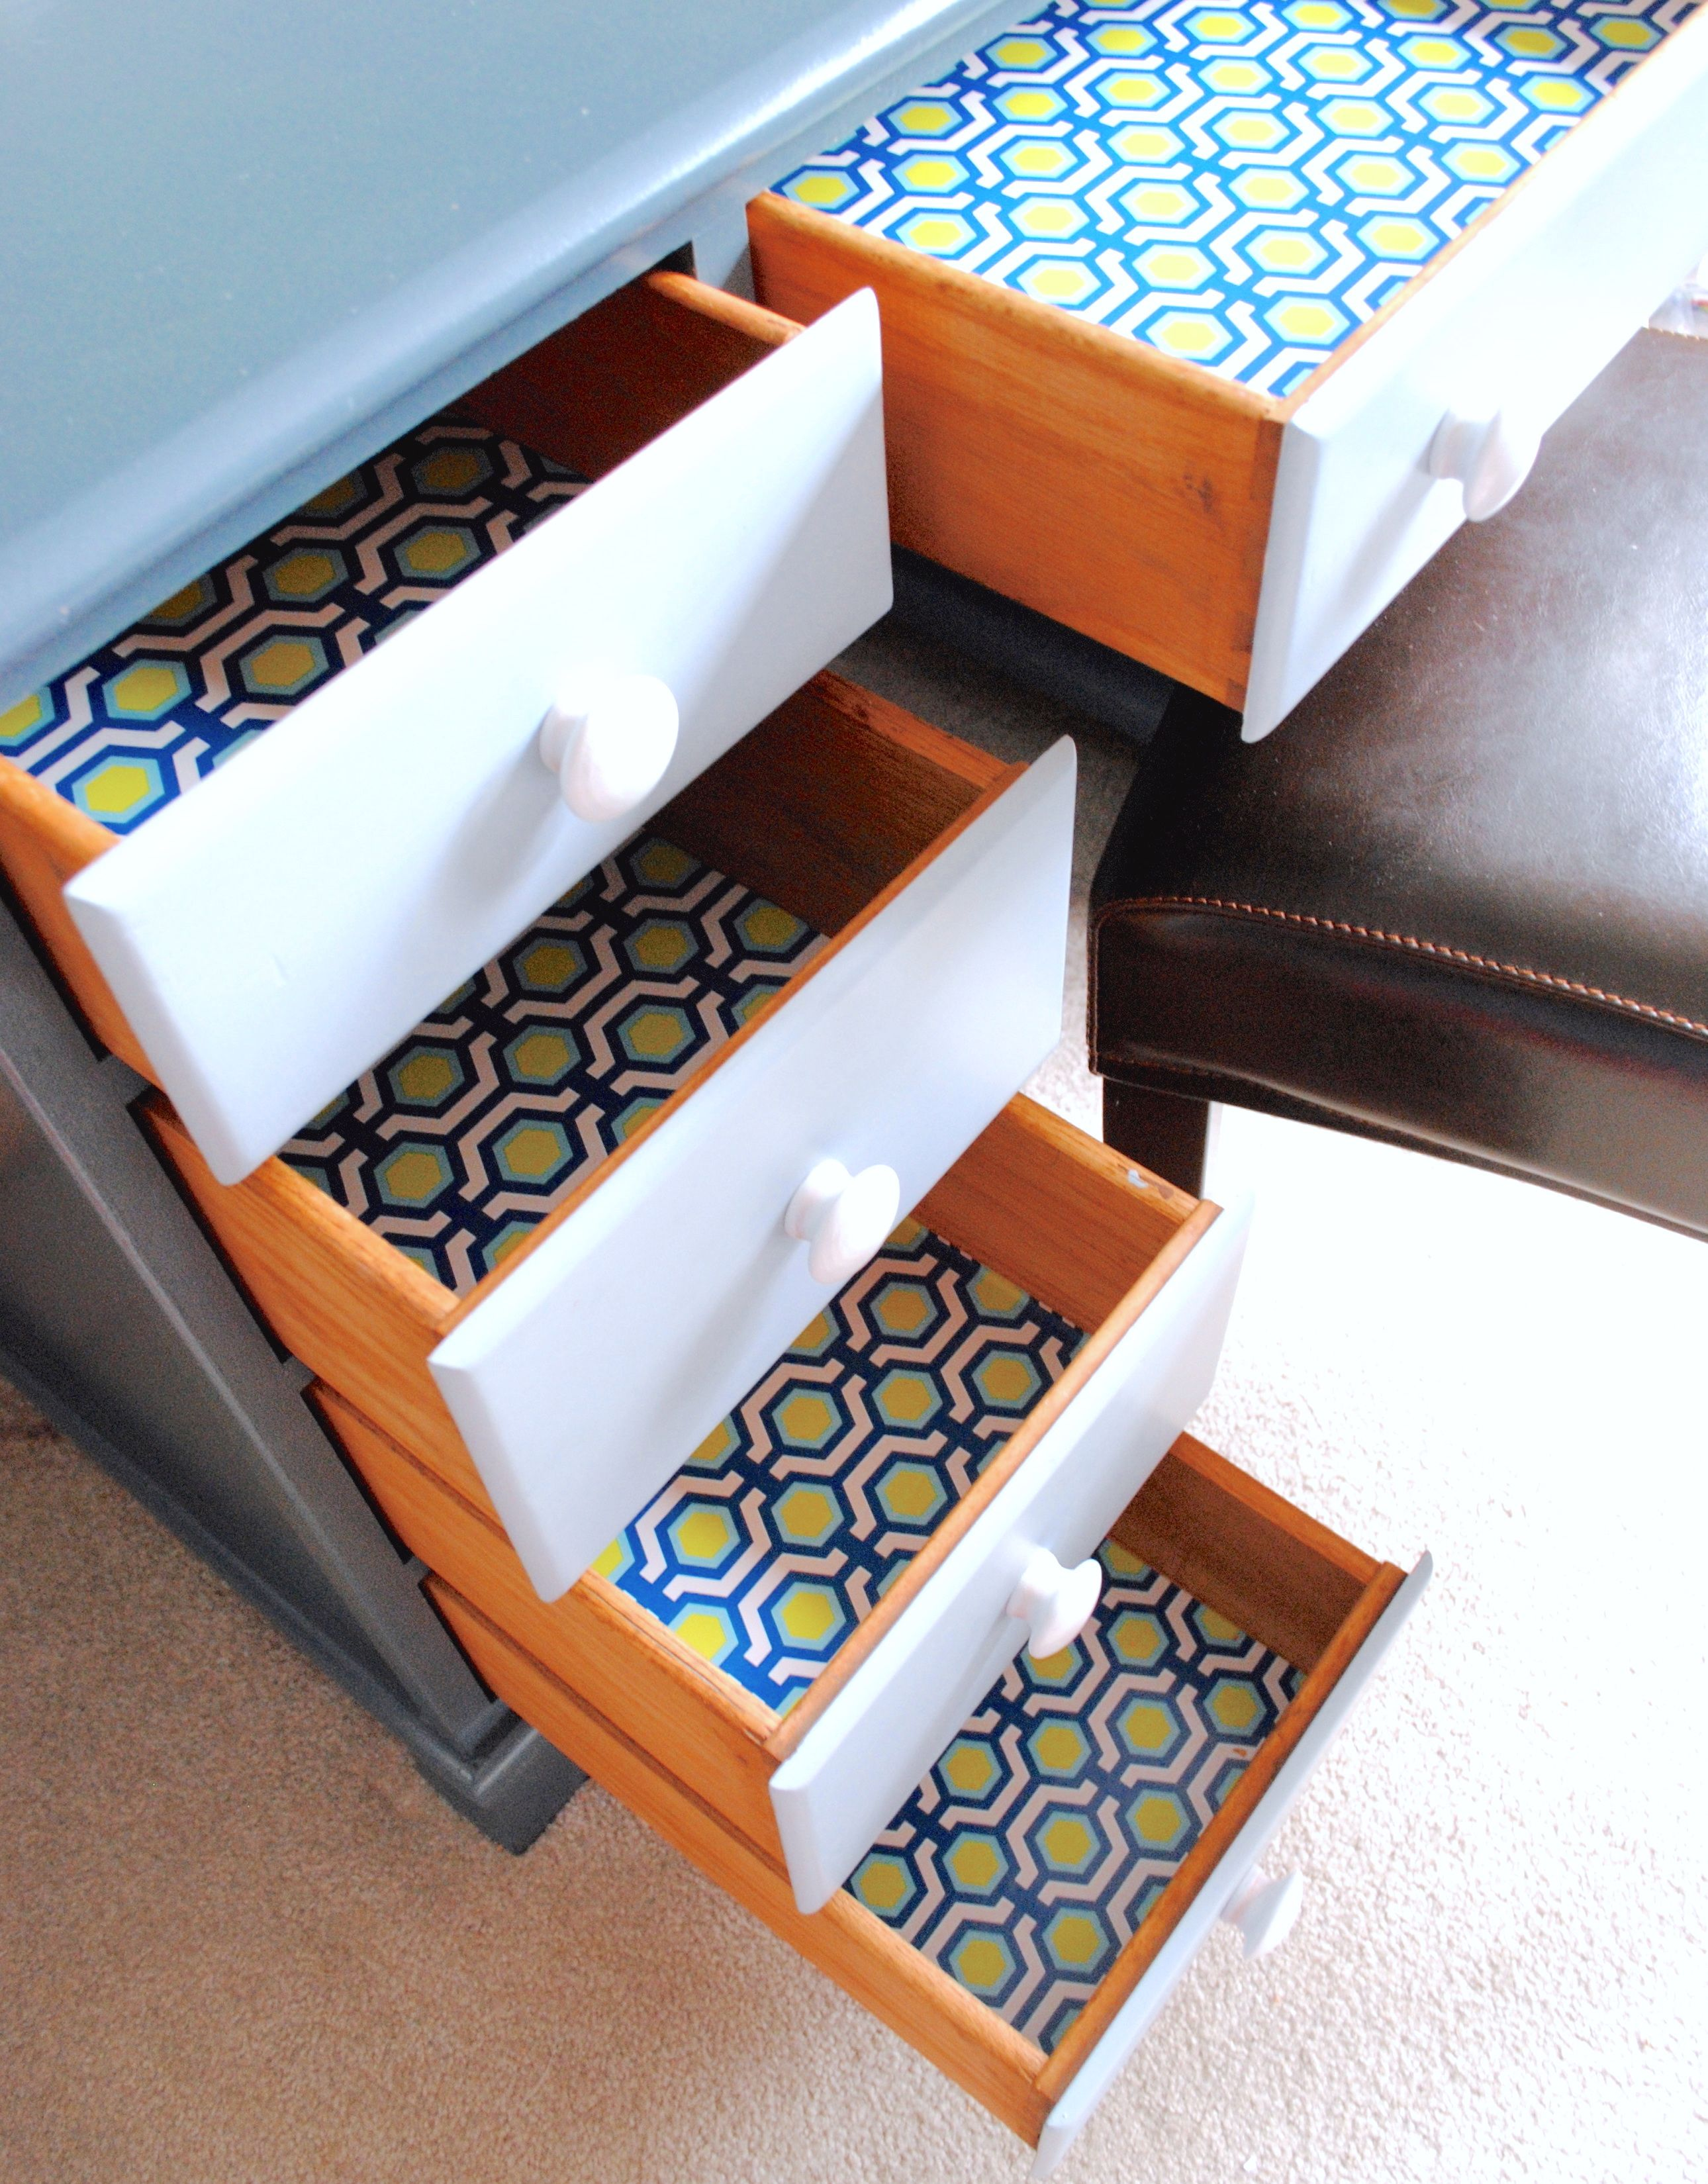 agape drawers store paper gas double grills side towel drawer rcs holder